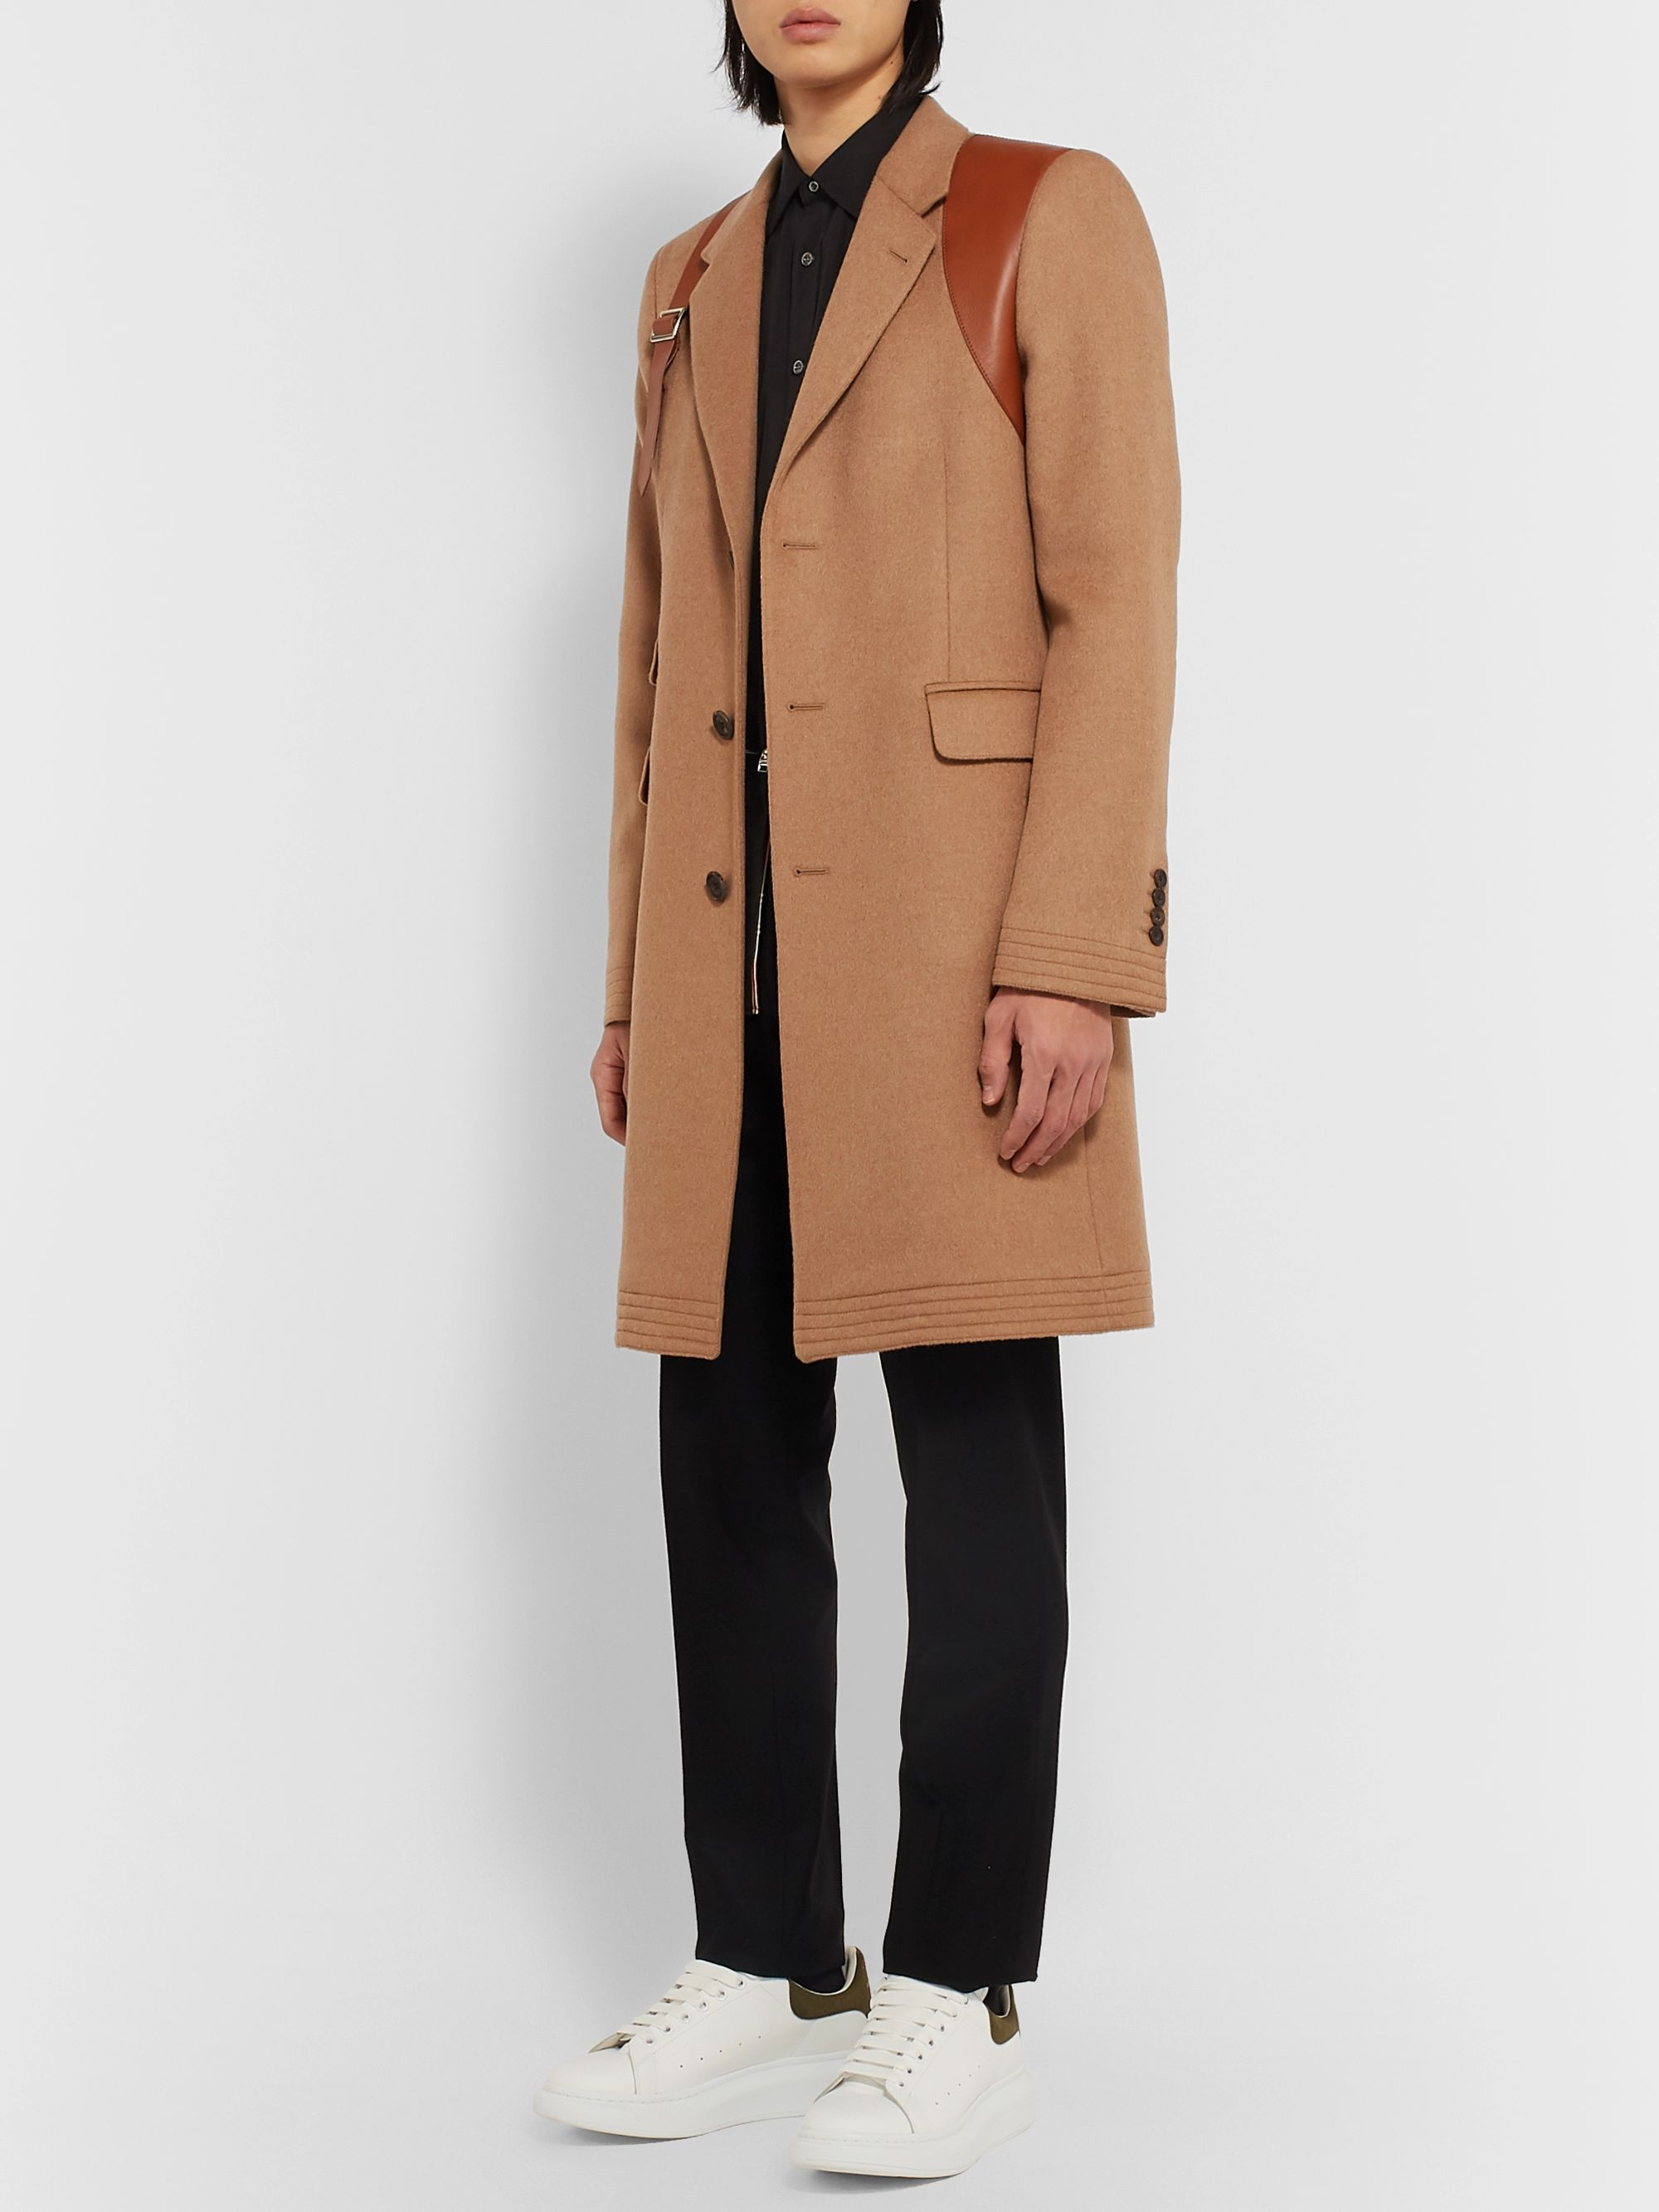 Alexander McQueen Leather Harness-Detailed Camel Hair Coat